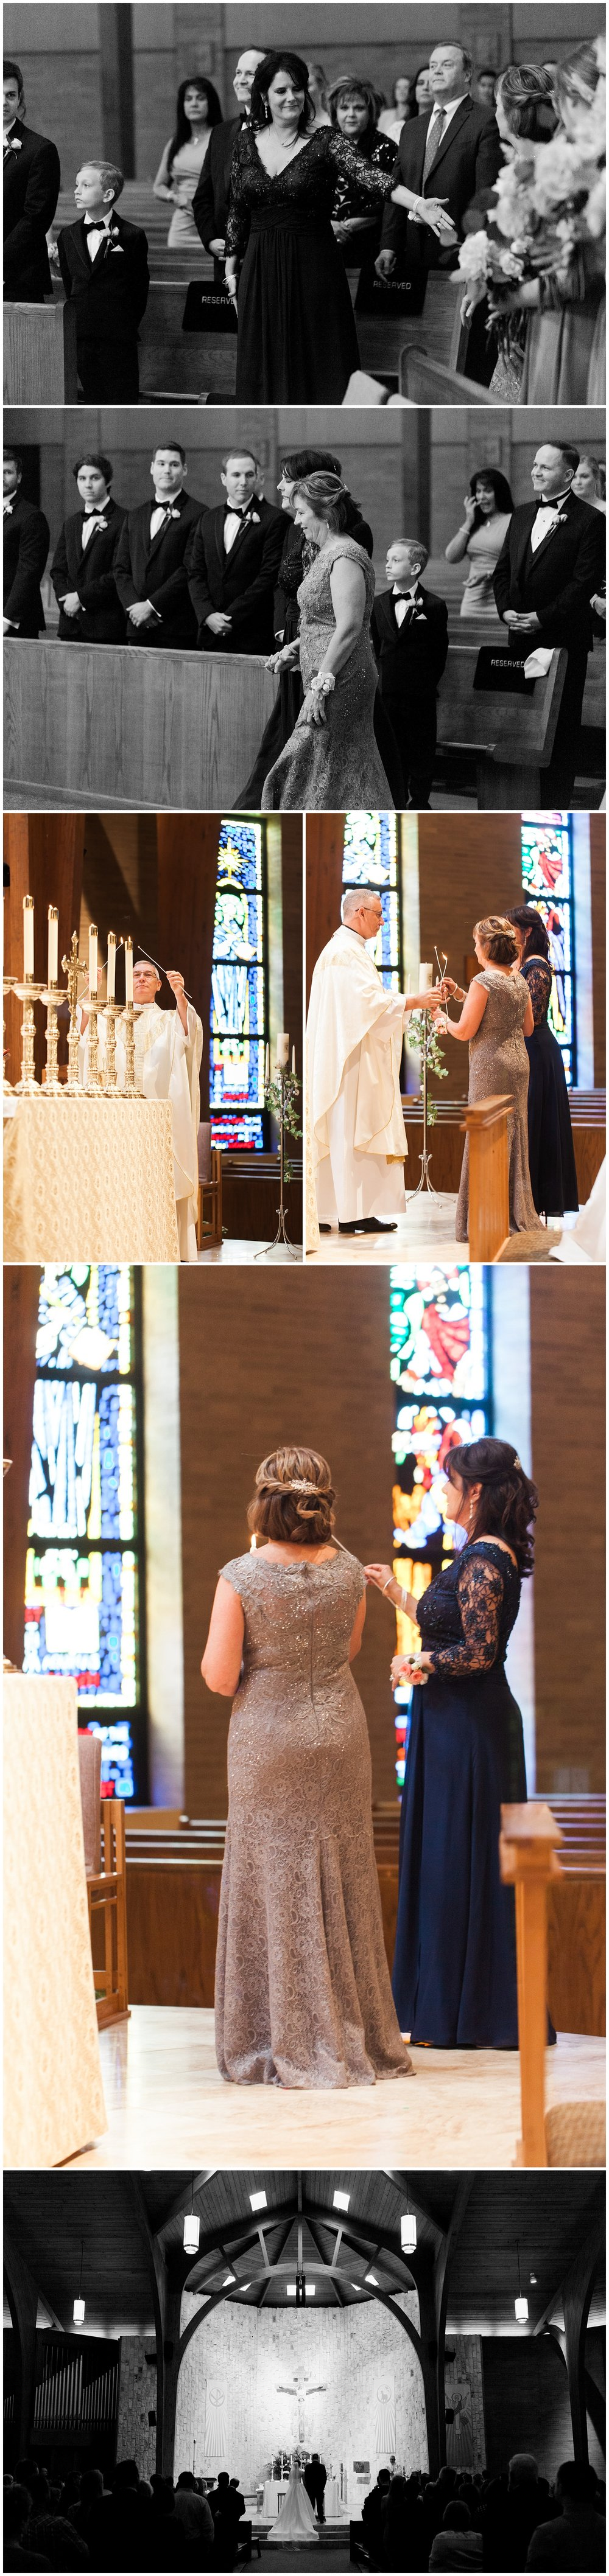 Brownstone_Reserve_Wedding_Kristina_Ross_Photography_0014.jpg